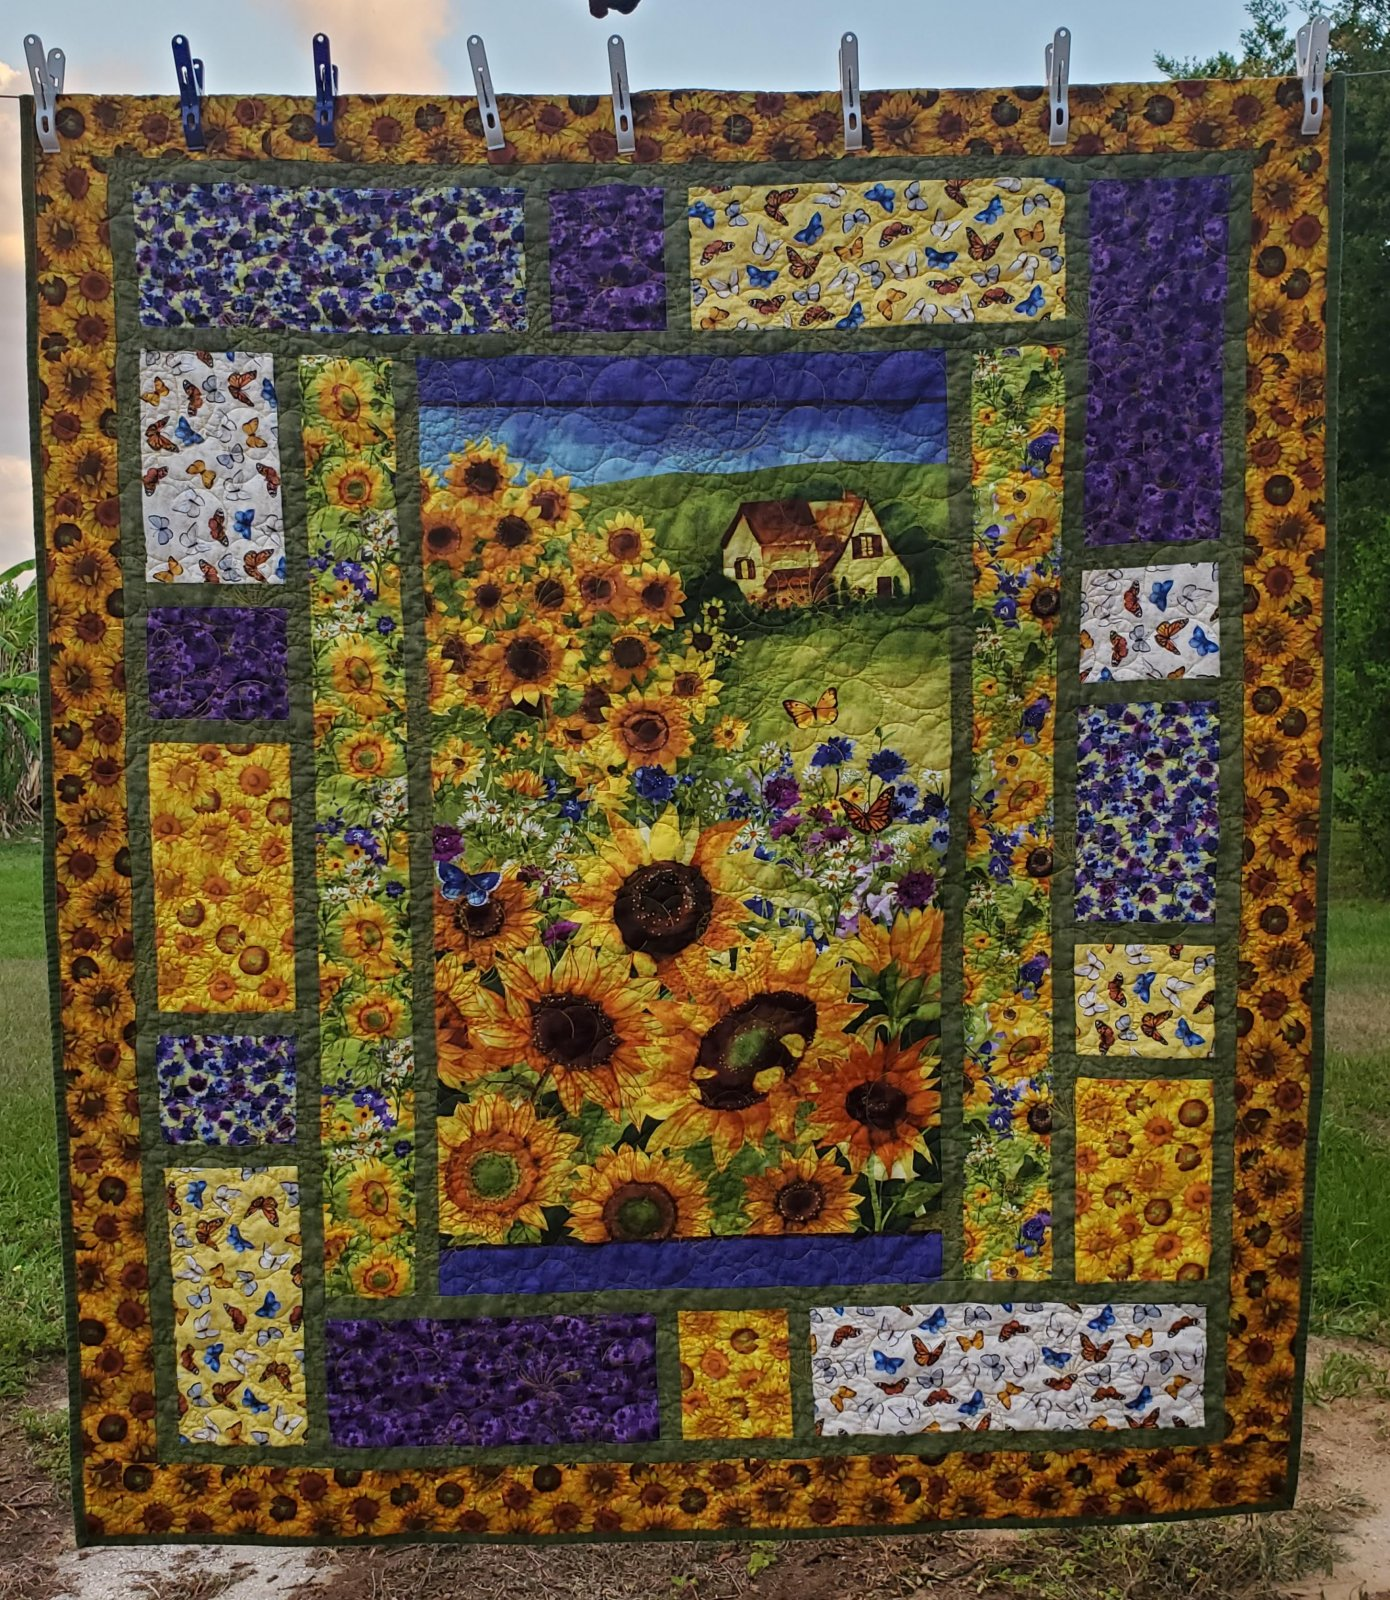 Sunny Fields Lap Quilt Kit - Panel, Pattern, Fabric for Top and Binding